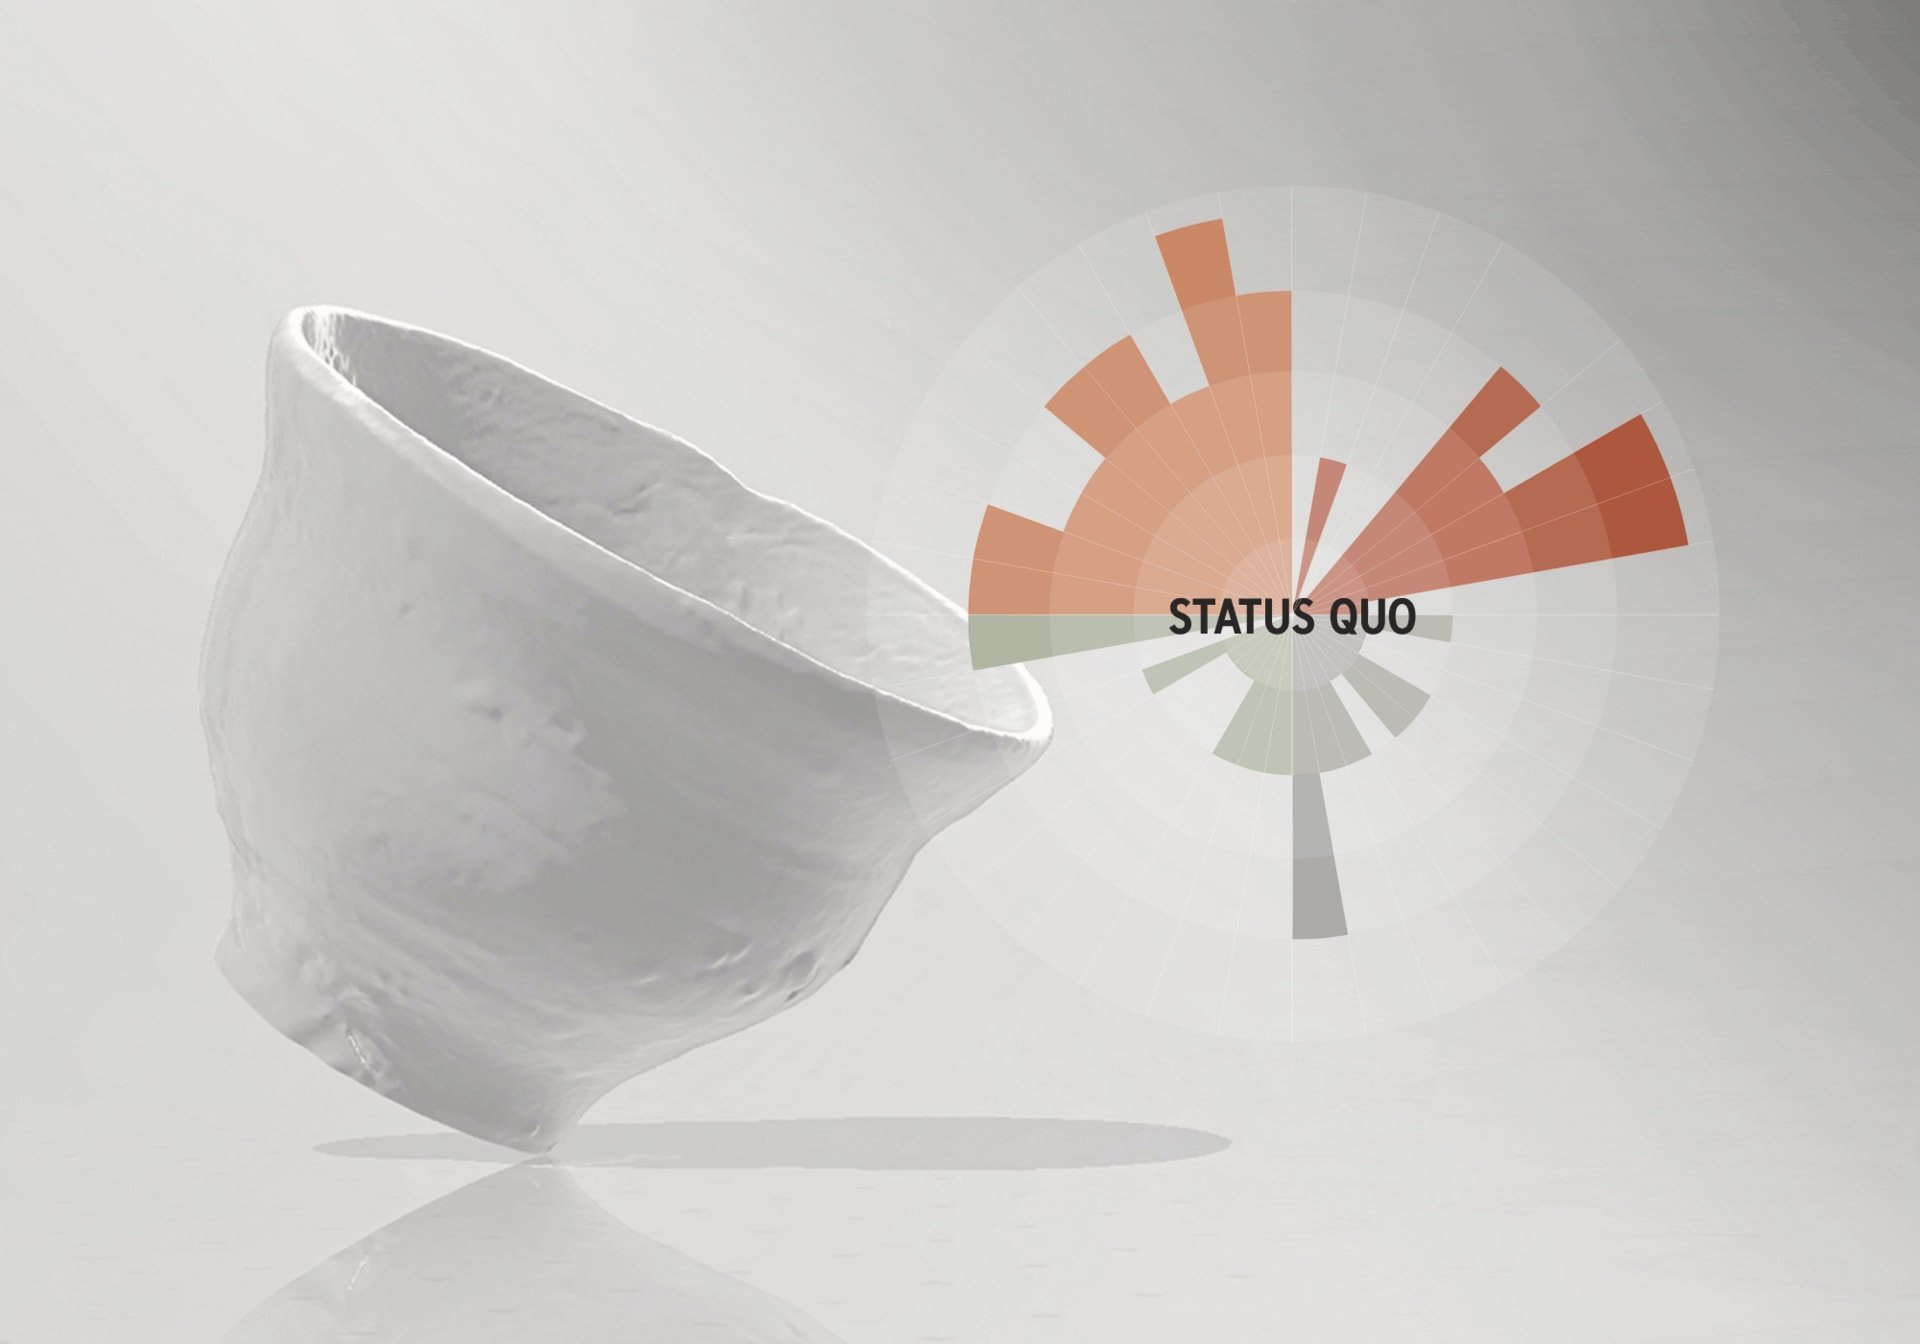 The cup's status quo visualised through the Sustainability Fader